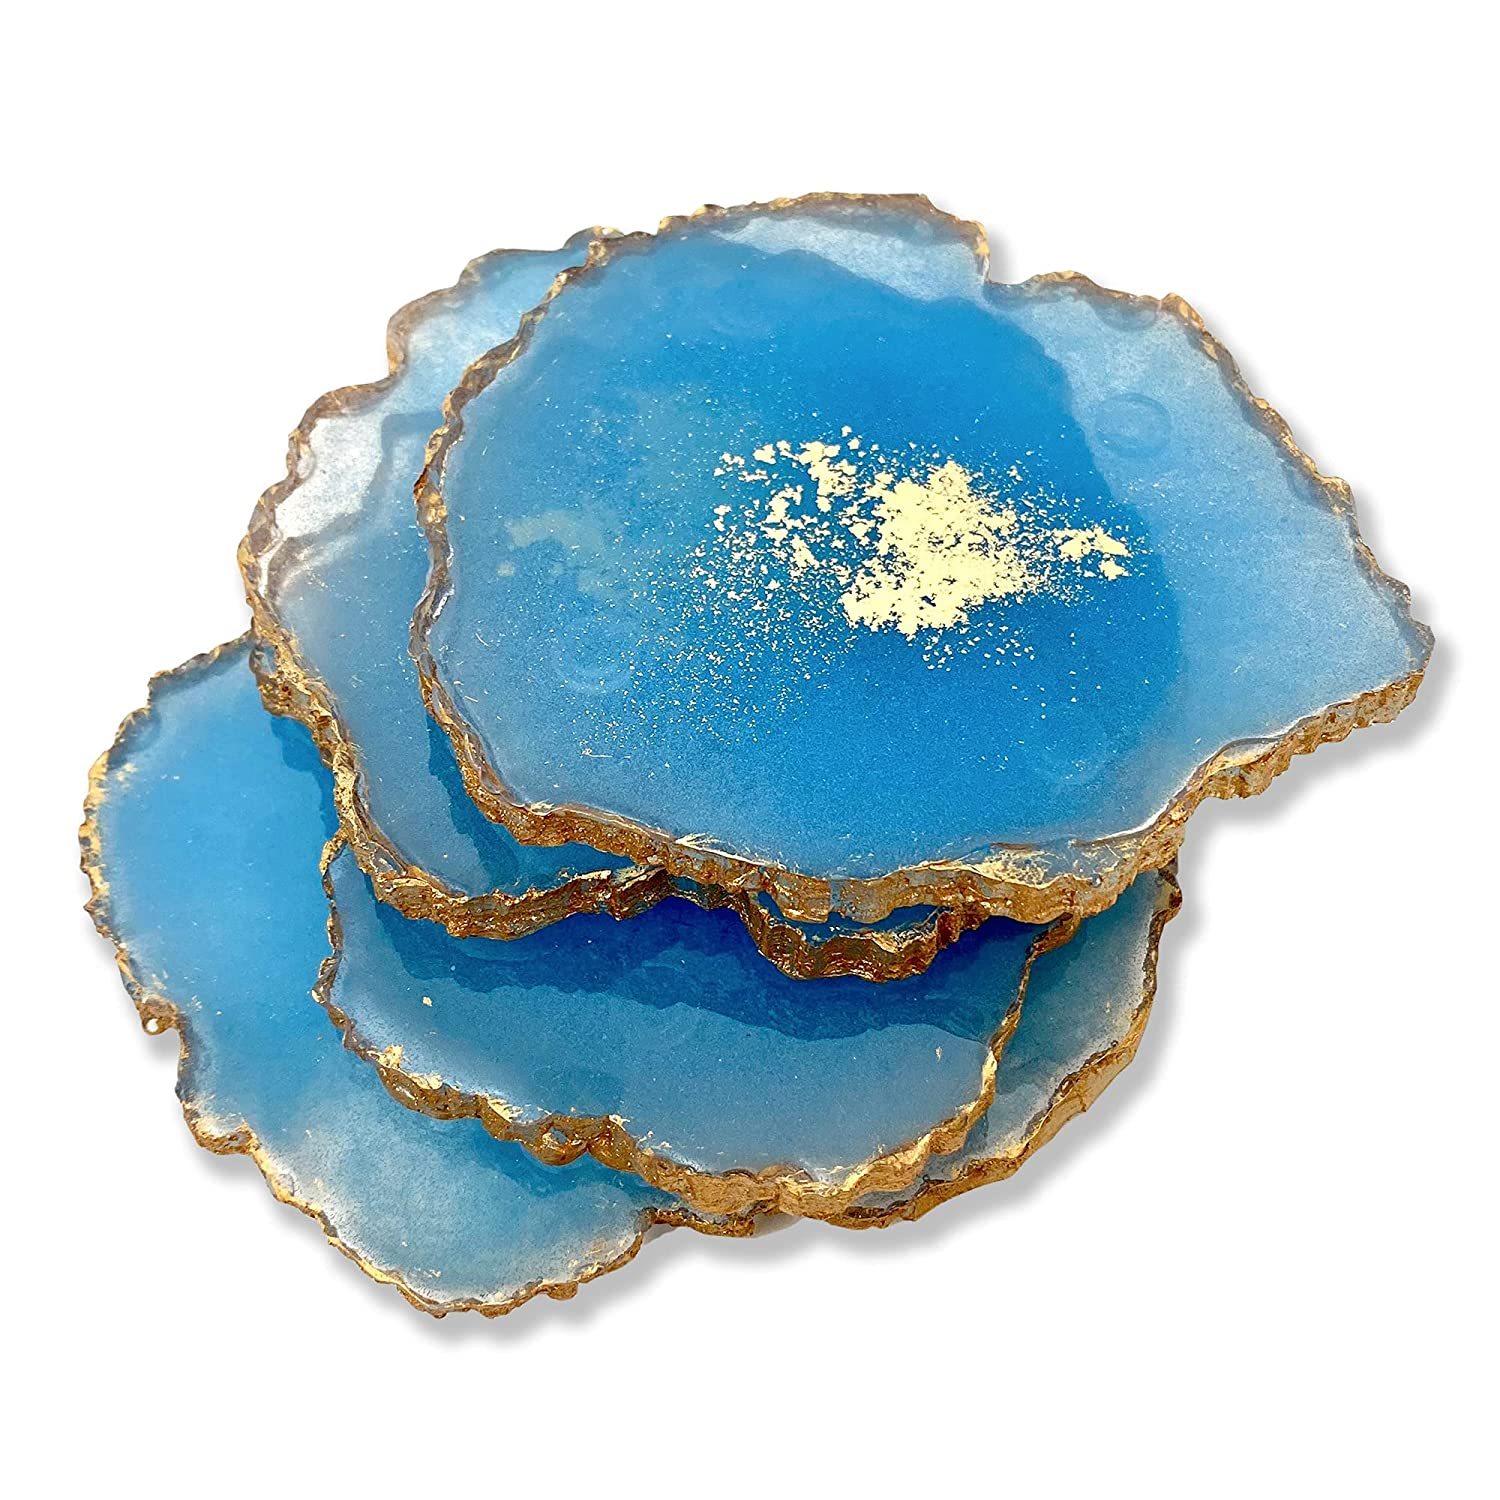 Geode Popular shaped resin Coasters set faux of coasters 4 agate Inexpensive